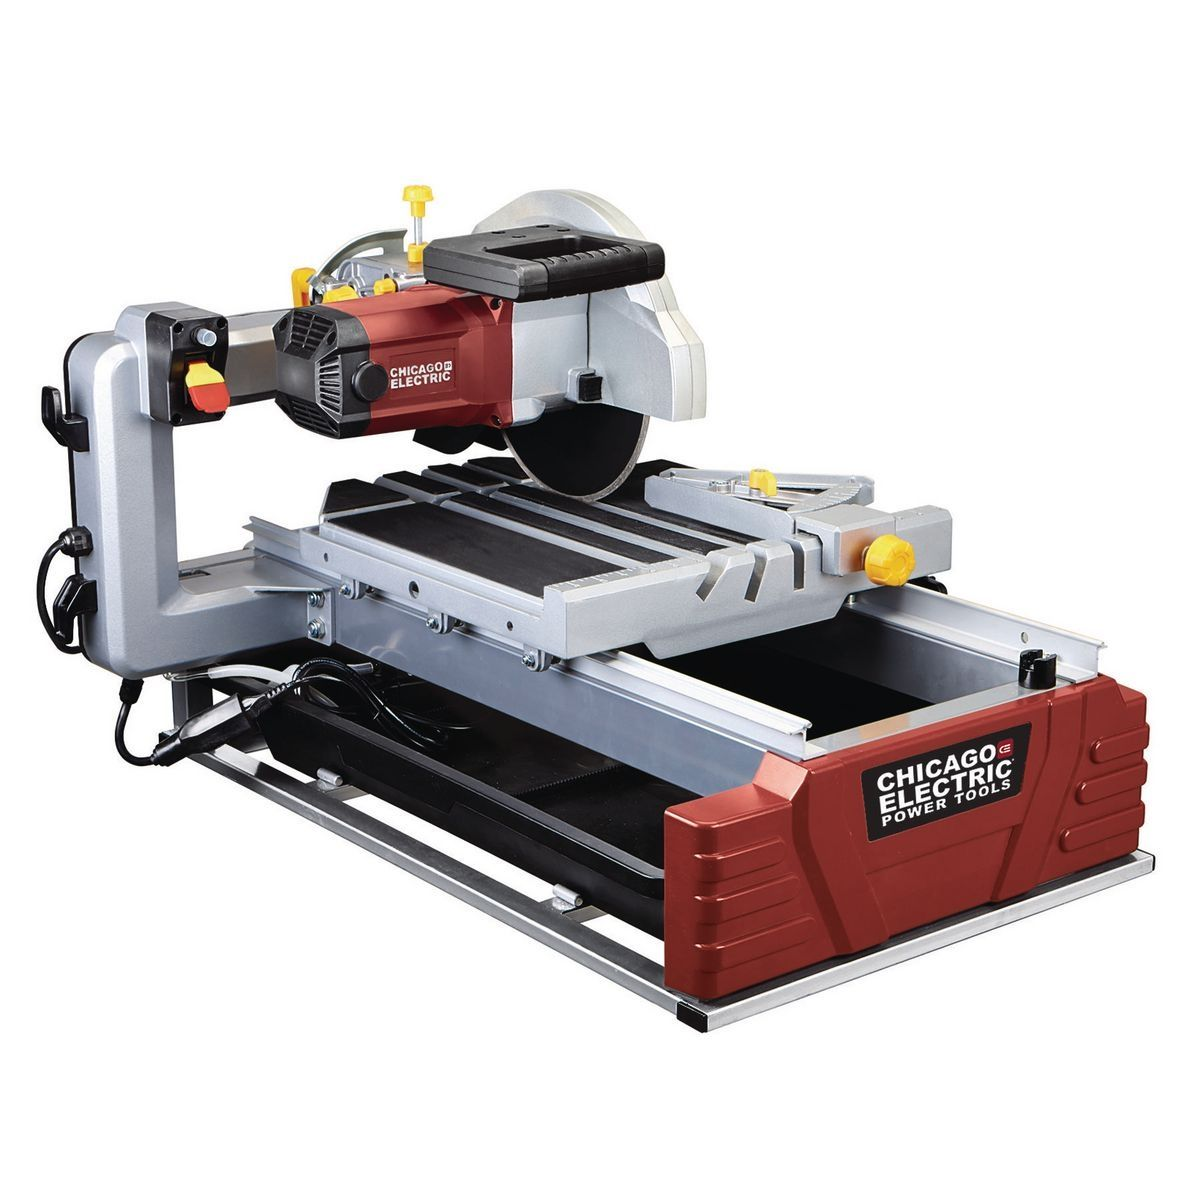 10 In 2 5 Hp Tile Brick Saw Brick Saw Tile Saw Tile Saws